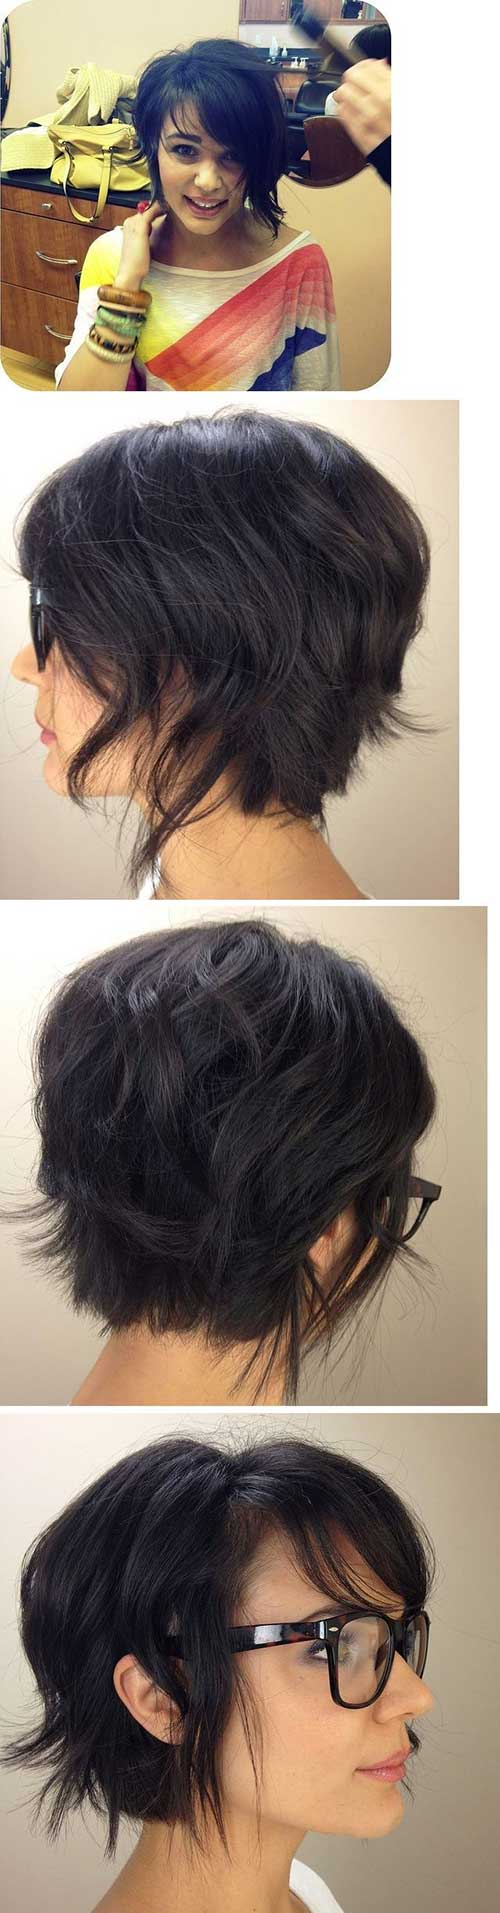 Pixie Short Hair Styles Back View Pictures